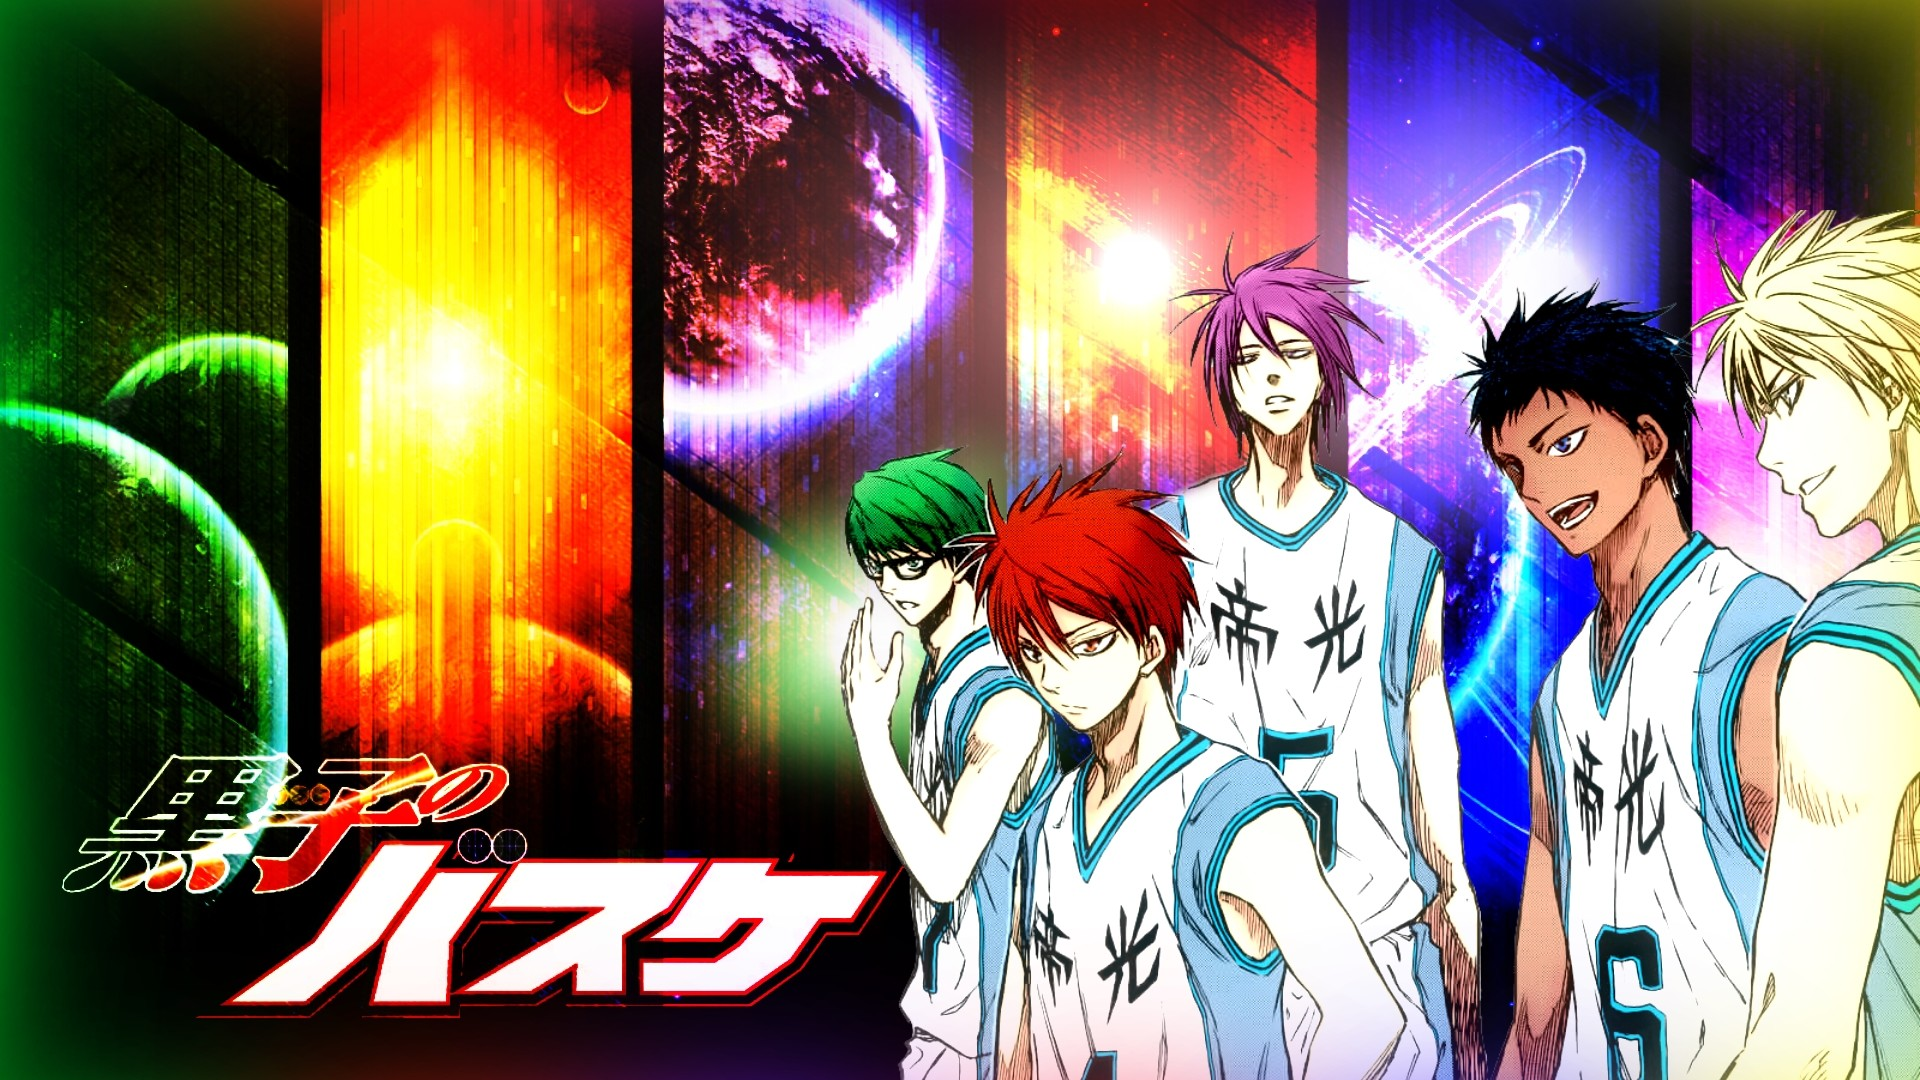 Res: 1920x1080, [Kuroko no Basuke] Miracle Generation () Need #iPhone #6S #Plus # Wallpaper/ #Background for #IPhone6SPlus? Follow iPhone 6S Plus 3Wallpape…